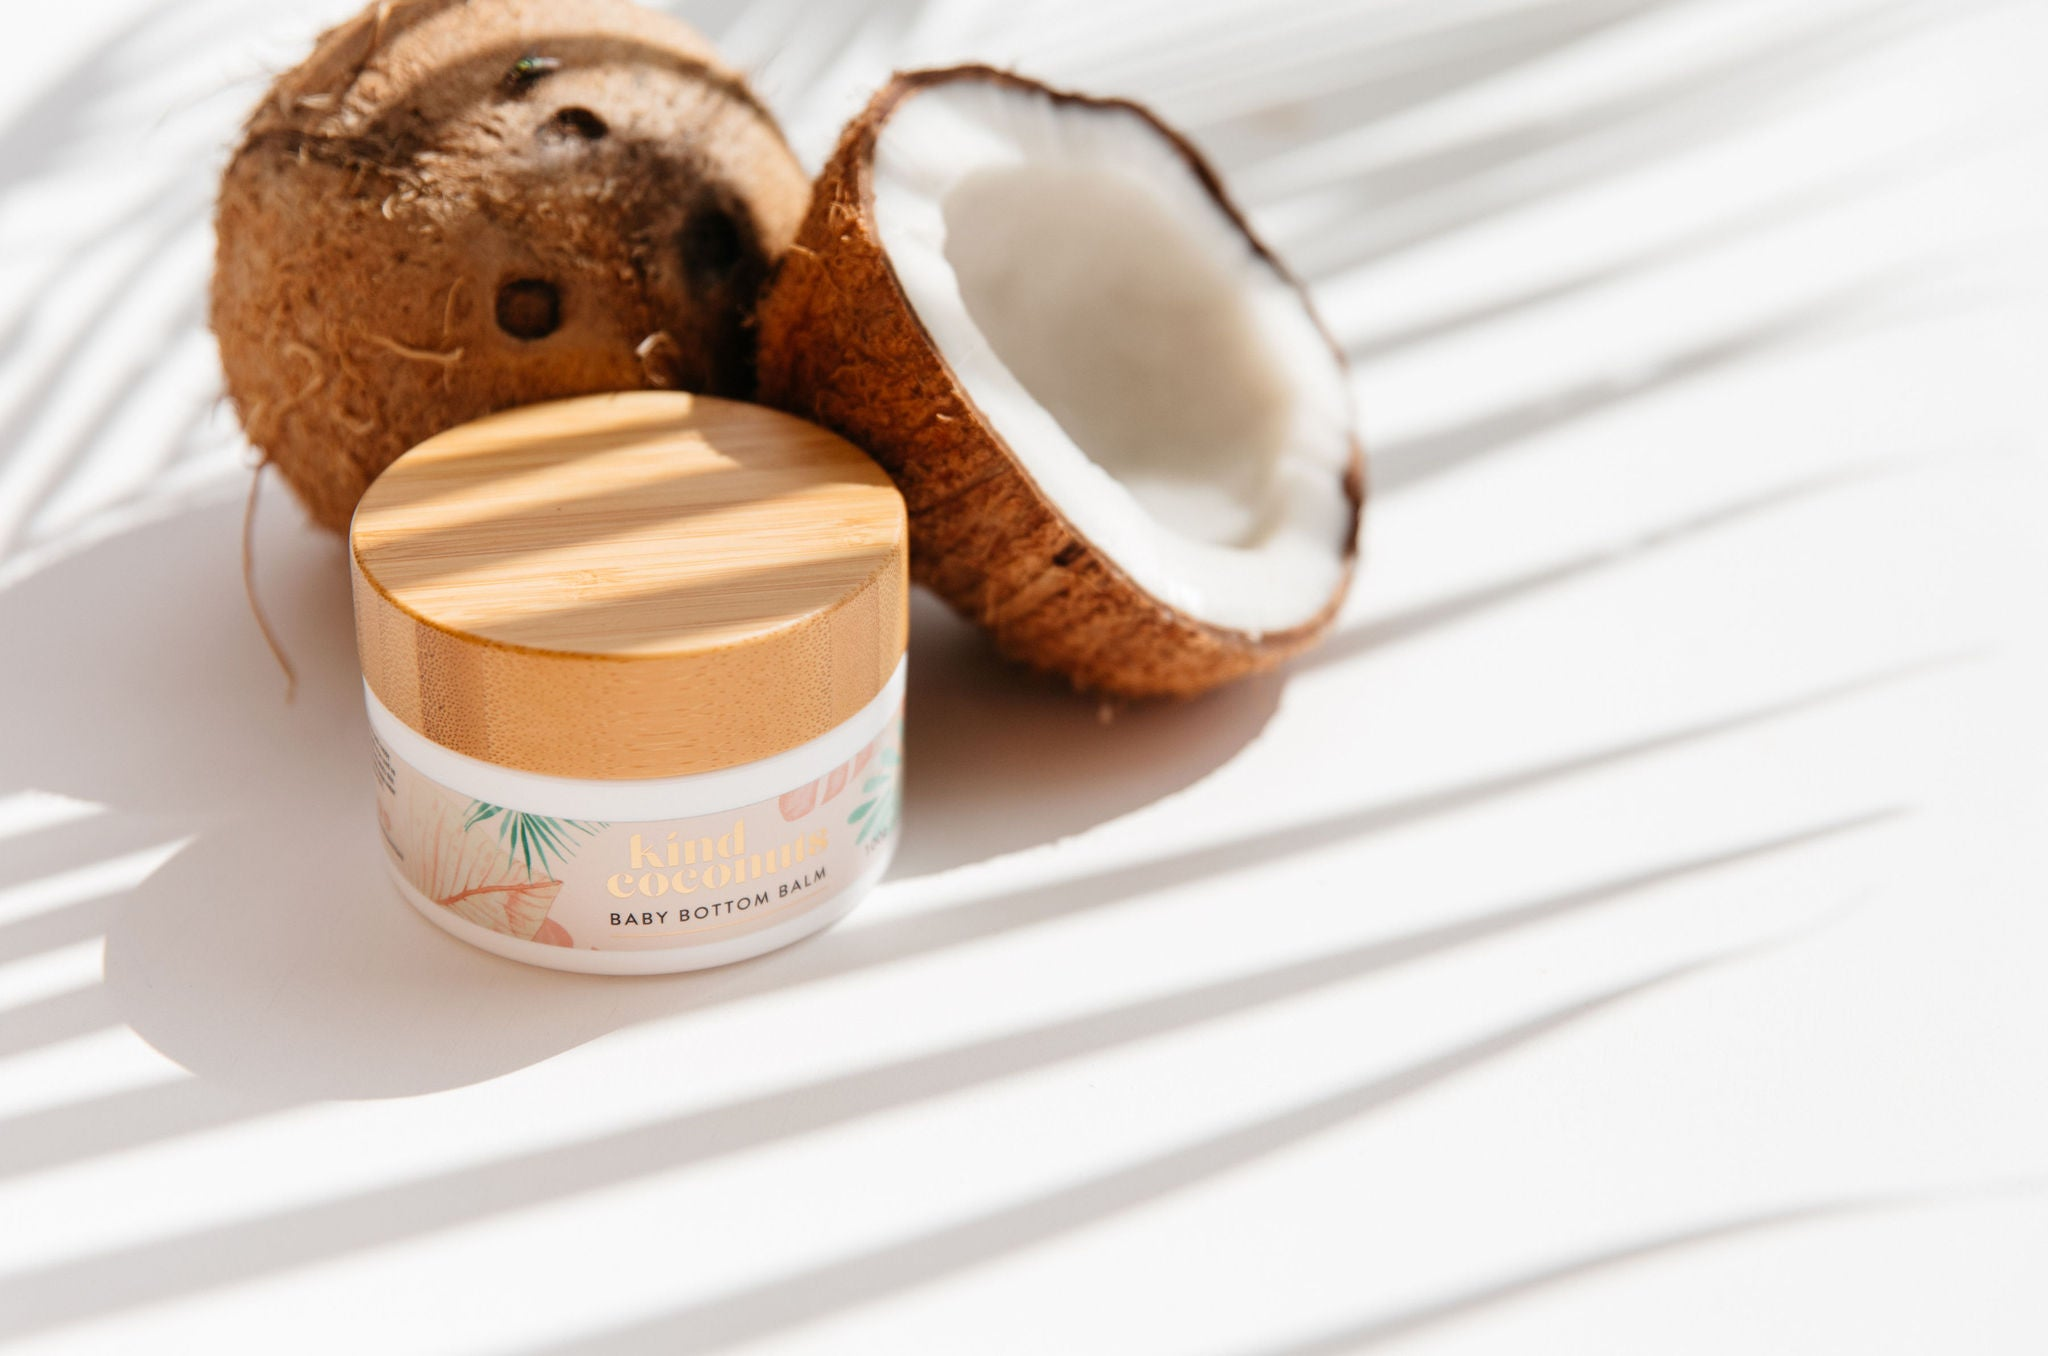 Natural Organic Baby Bottom Balm by Kind Coconuts Australia